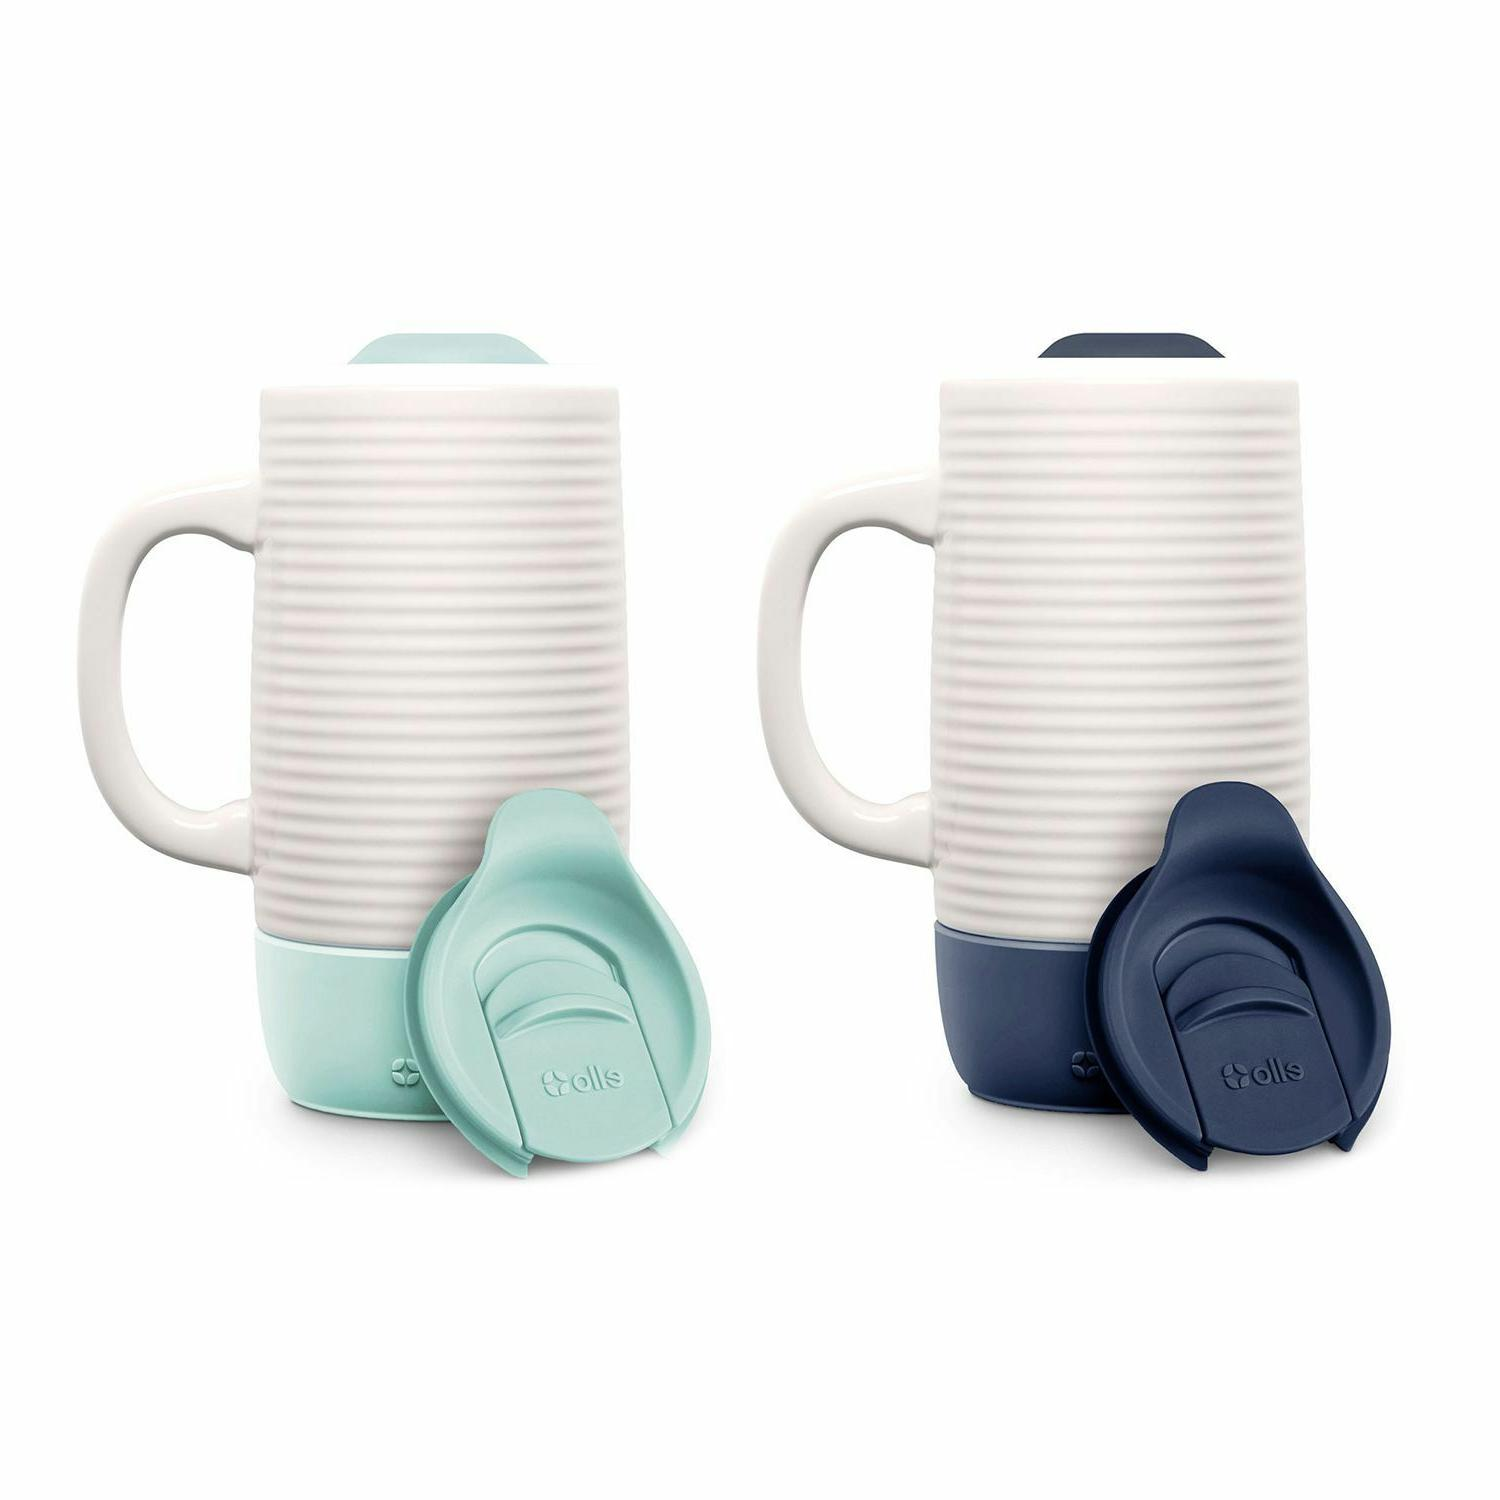 Ello Ceramic Travel Mug 2 Pack *BEST